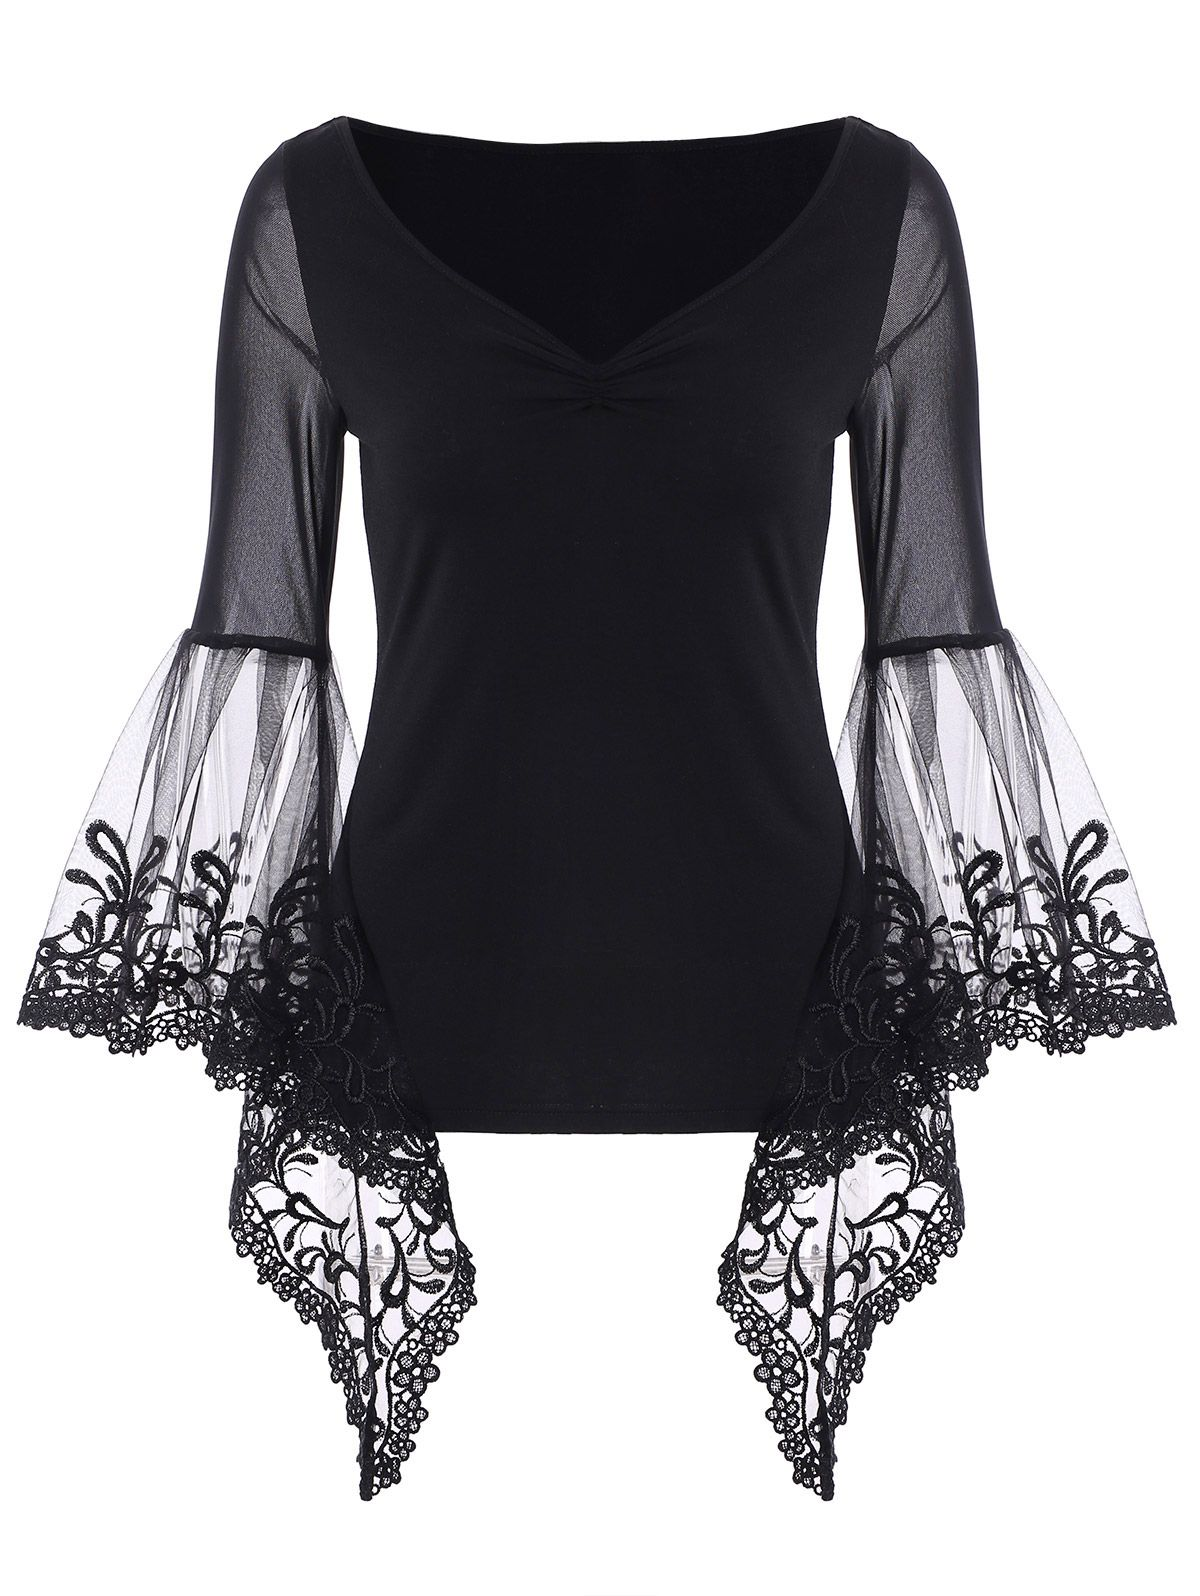 4578b62b7deb ... Tops For Women Fashion Sale Online. Bell Sleeve Sheer Lace Panel T-Shirt